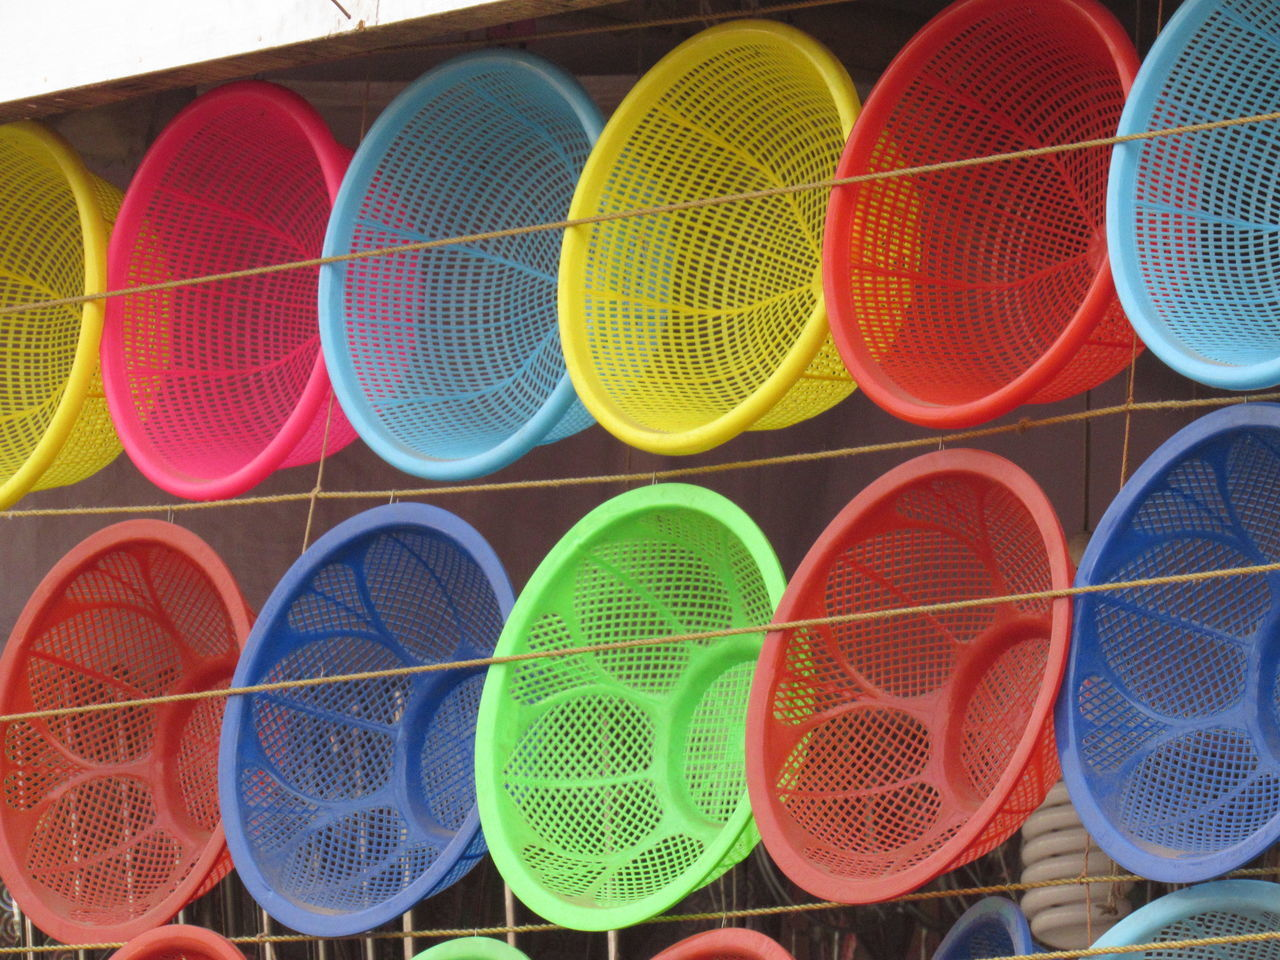 Bucket Day Layers Layers And Colors Multi Colored No People Outdoors Red Stall